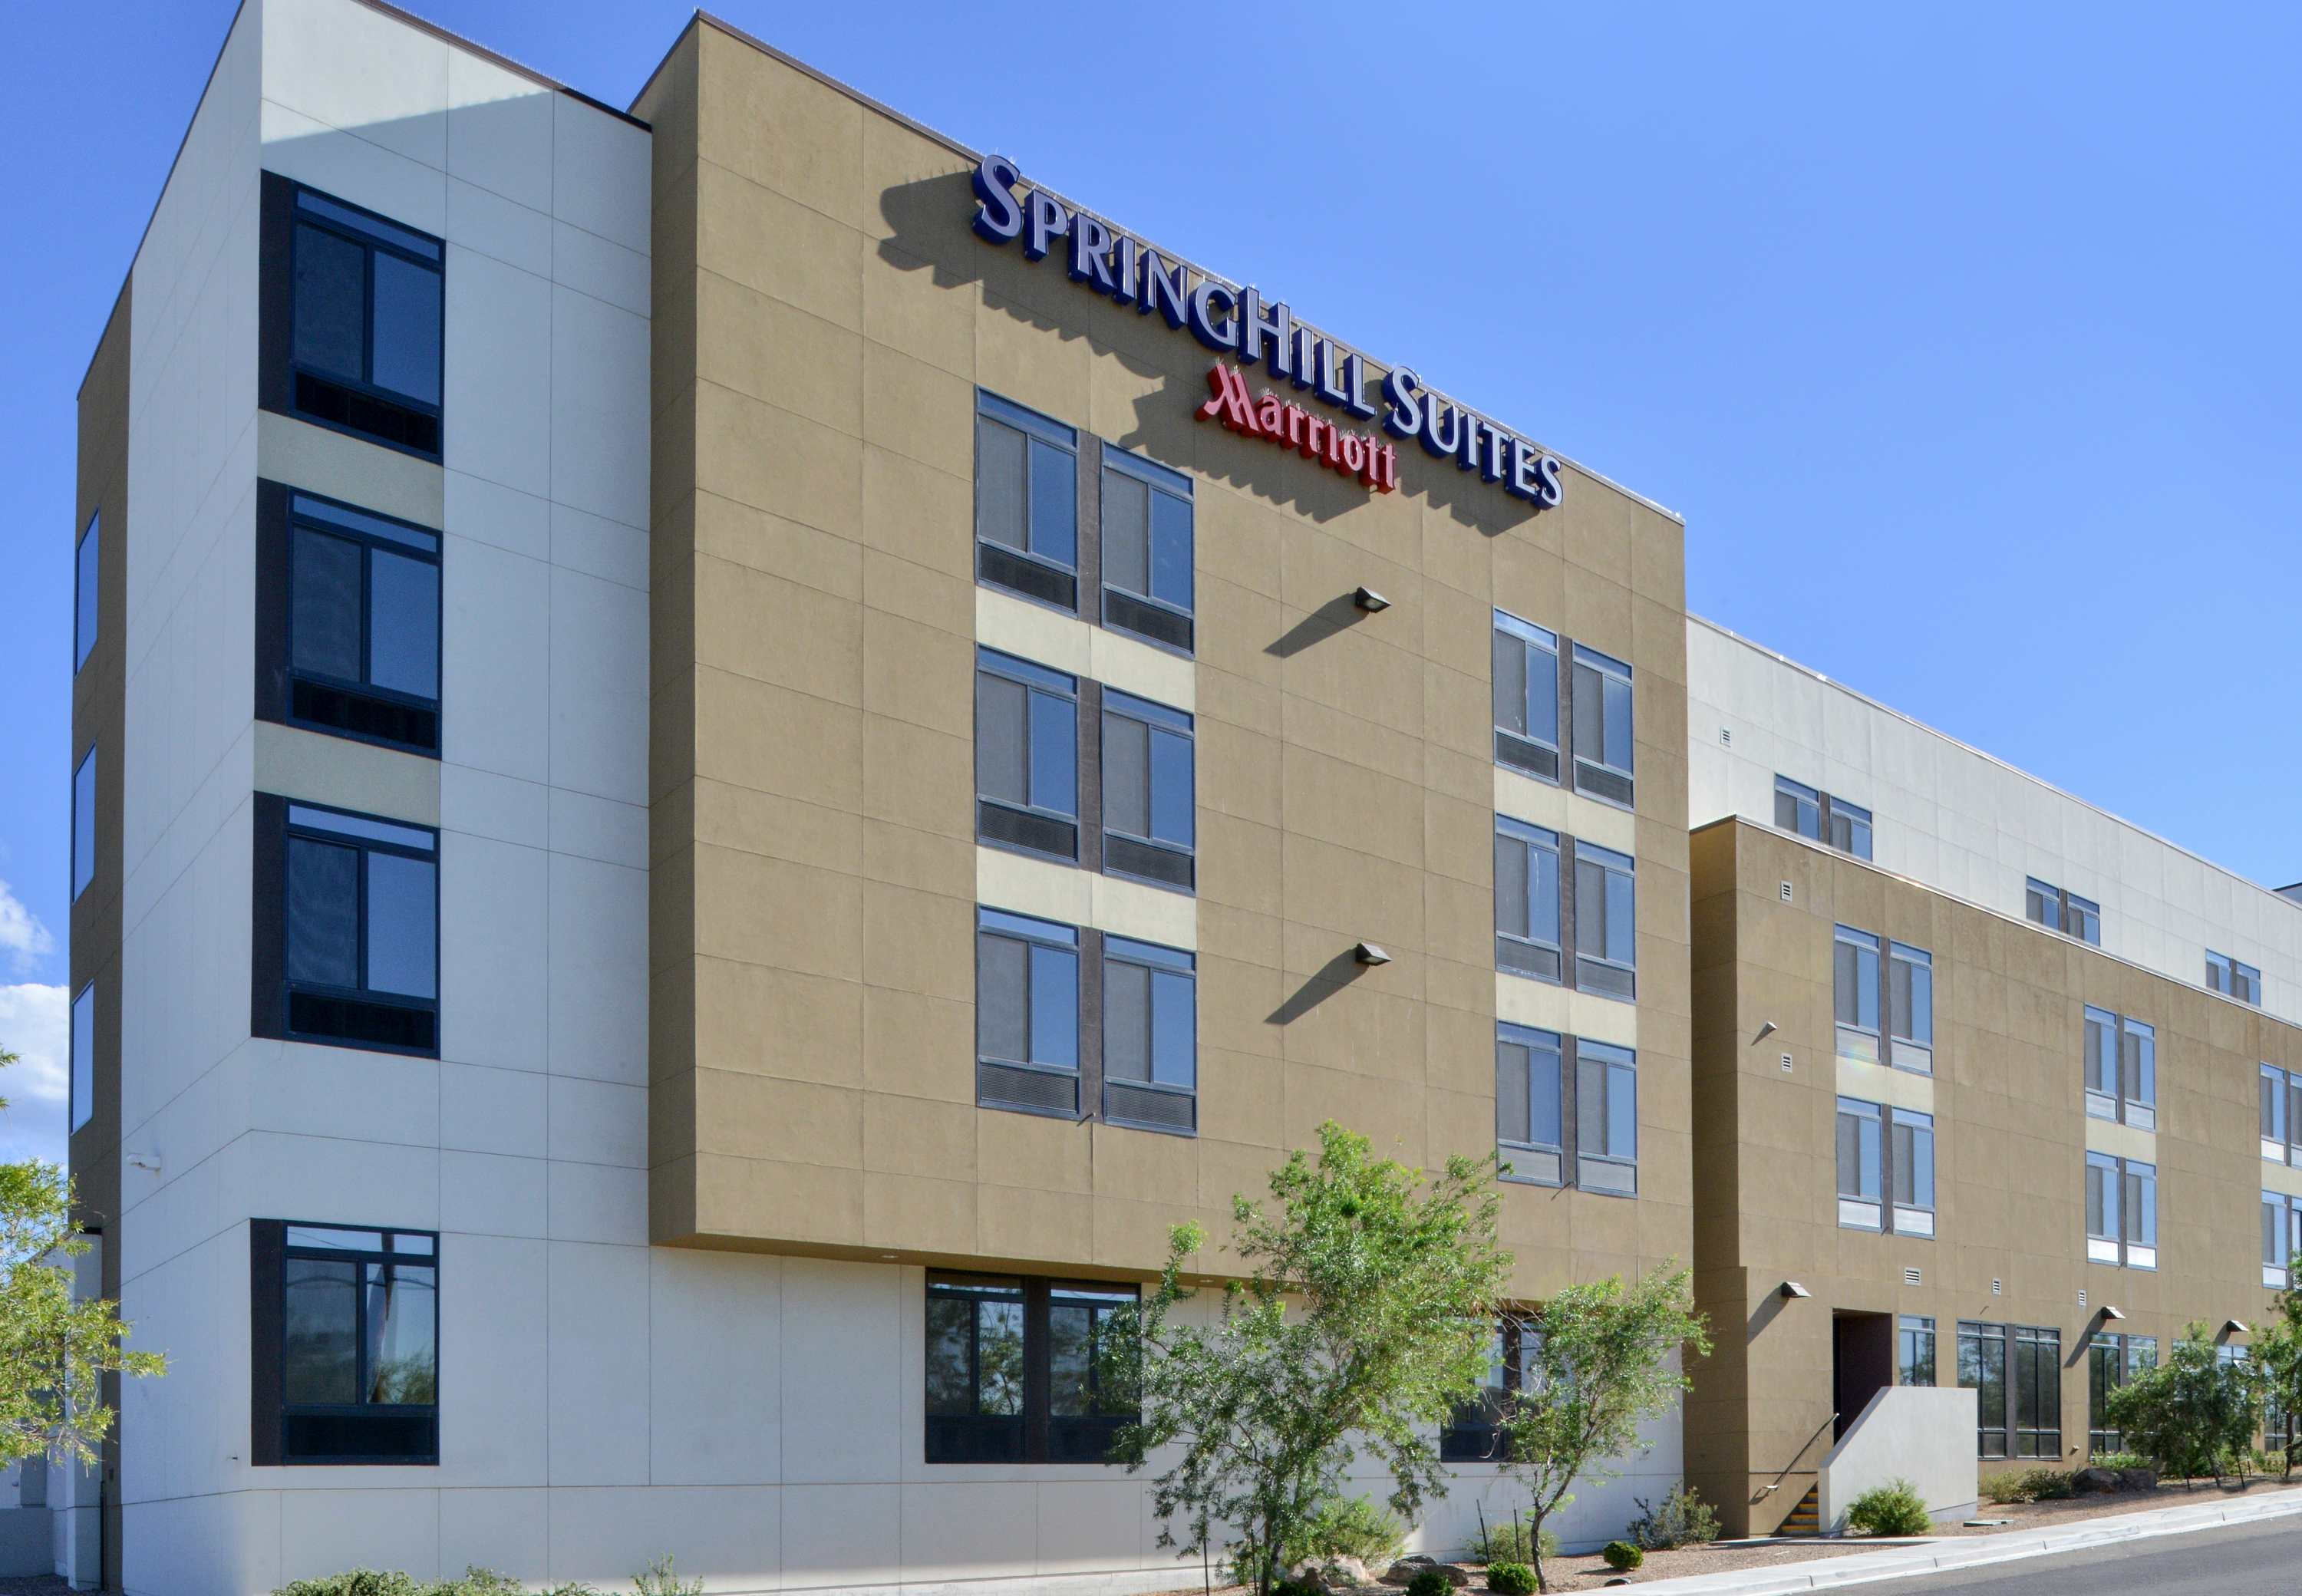 SpringHill Suites by Marriott Kingman Route 66 image 8